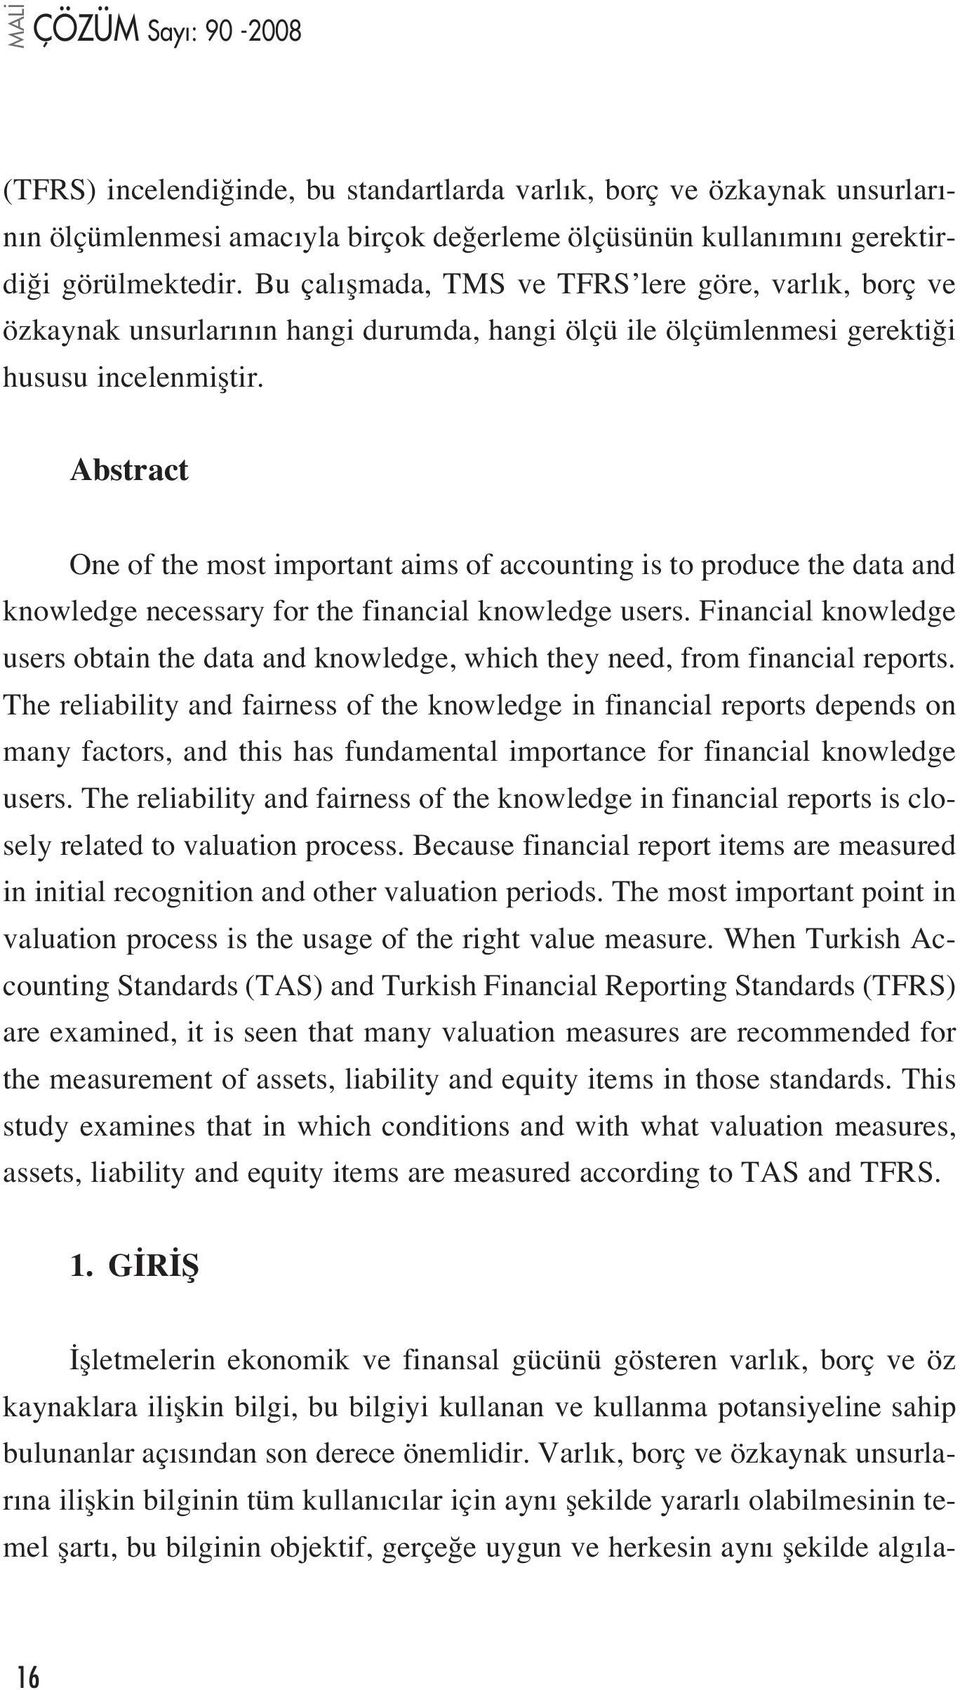 Abstract One of the most important aims of accounting is to produce the data and knowledge necessary for the financial knowledge users.